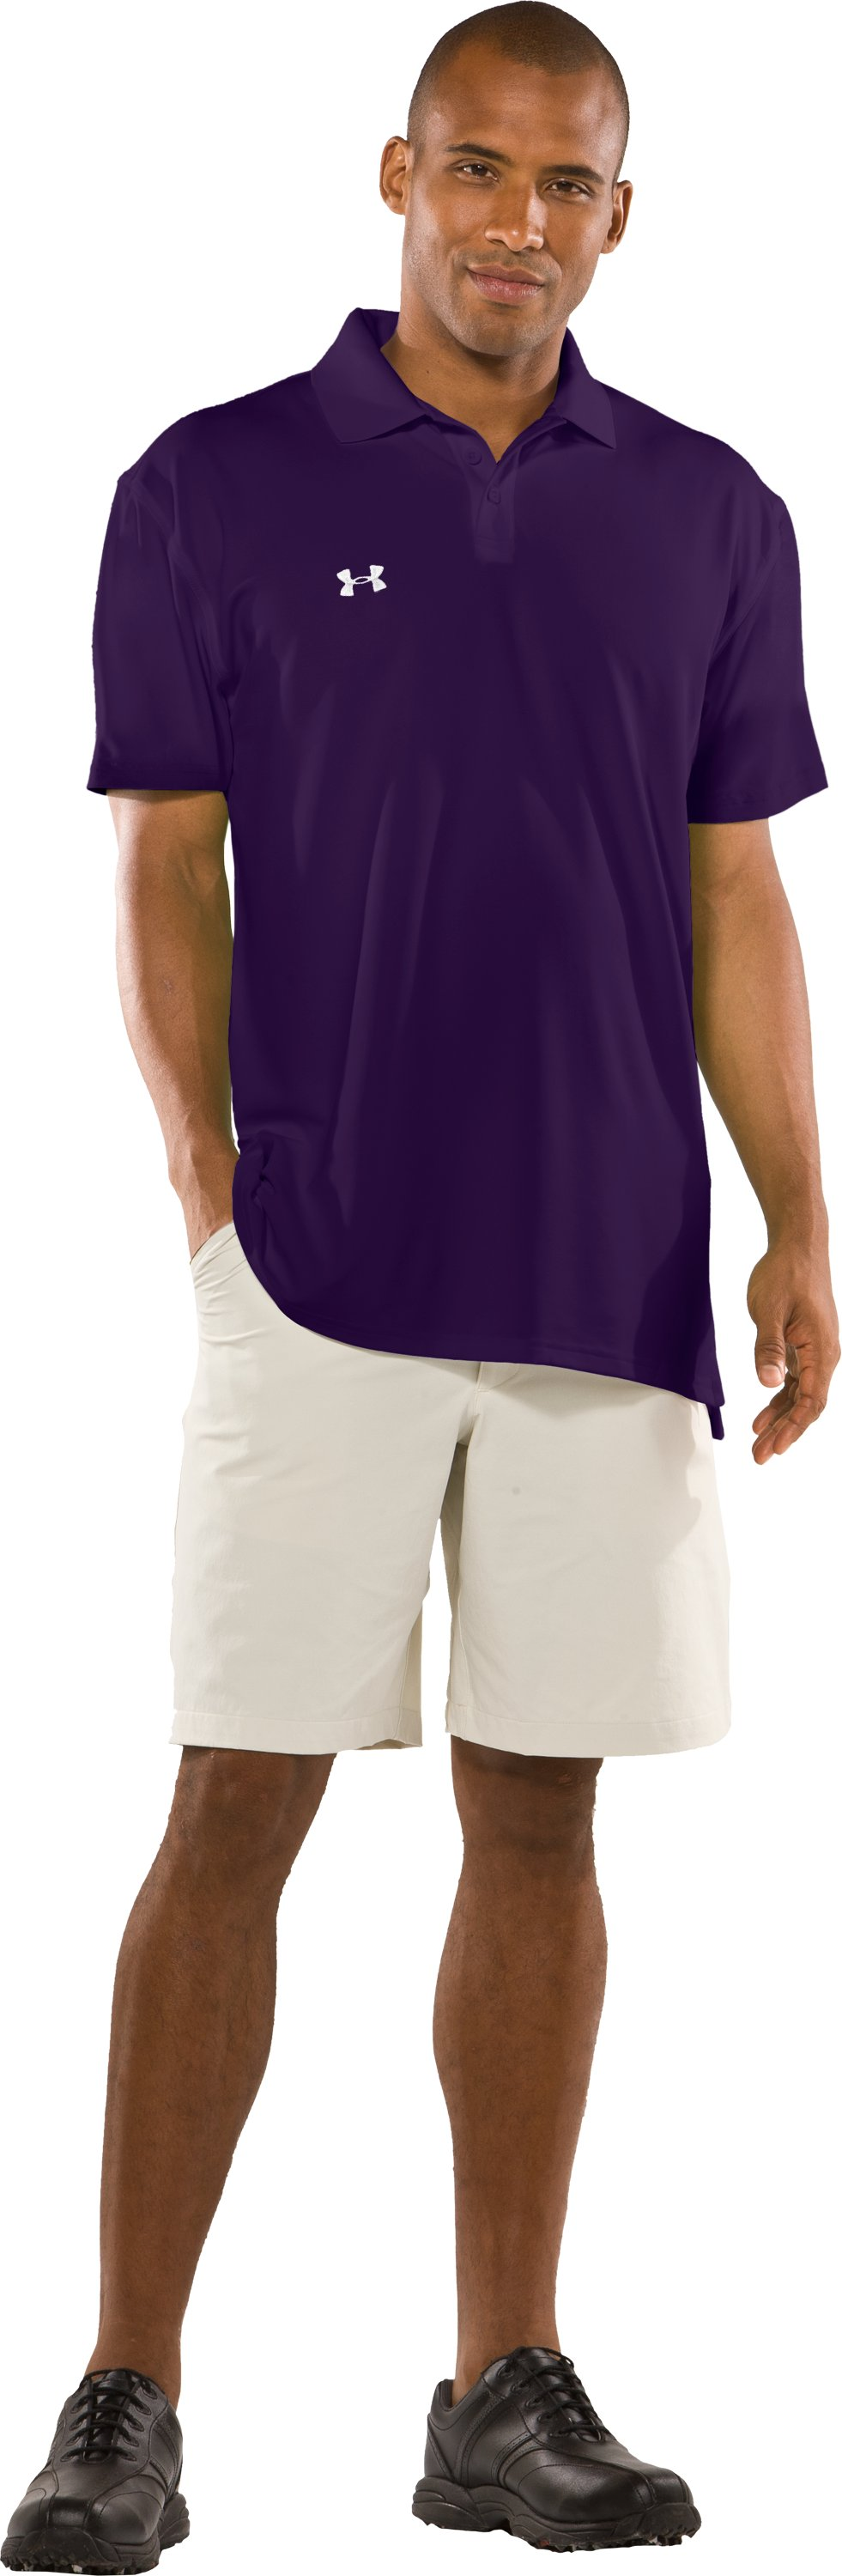 Men's UA Performance Short Sleeve Team Golf Polo, Purple, zoomed image